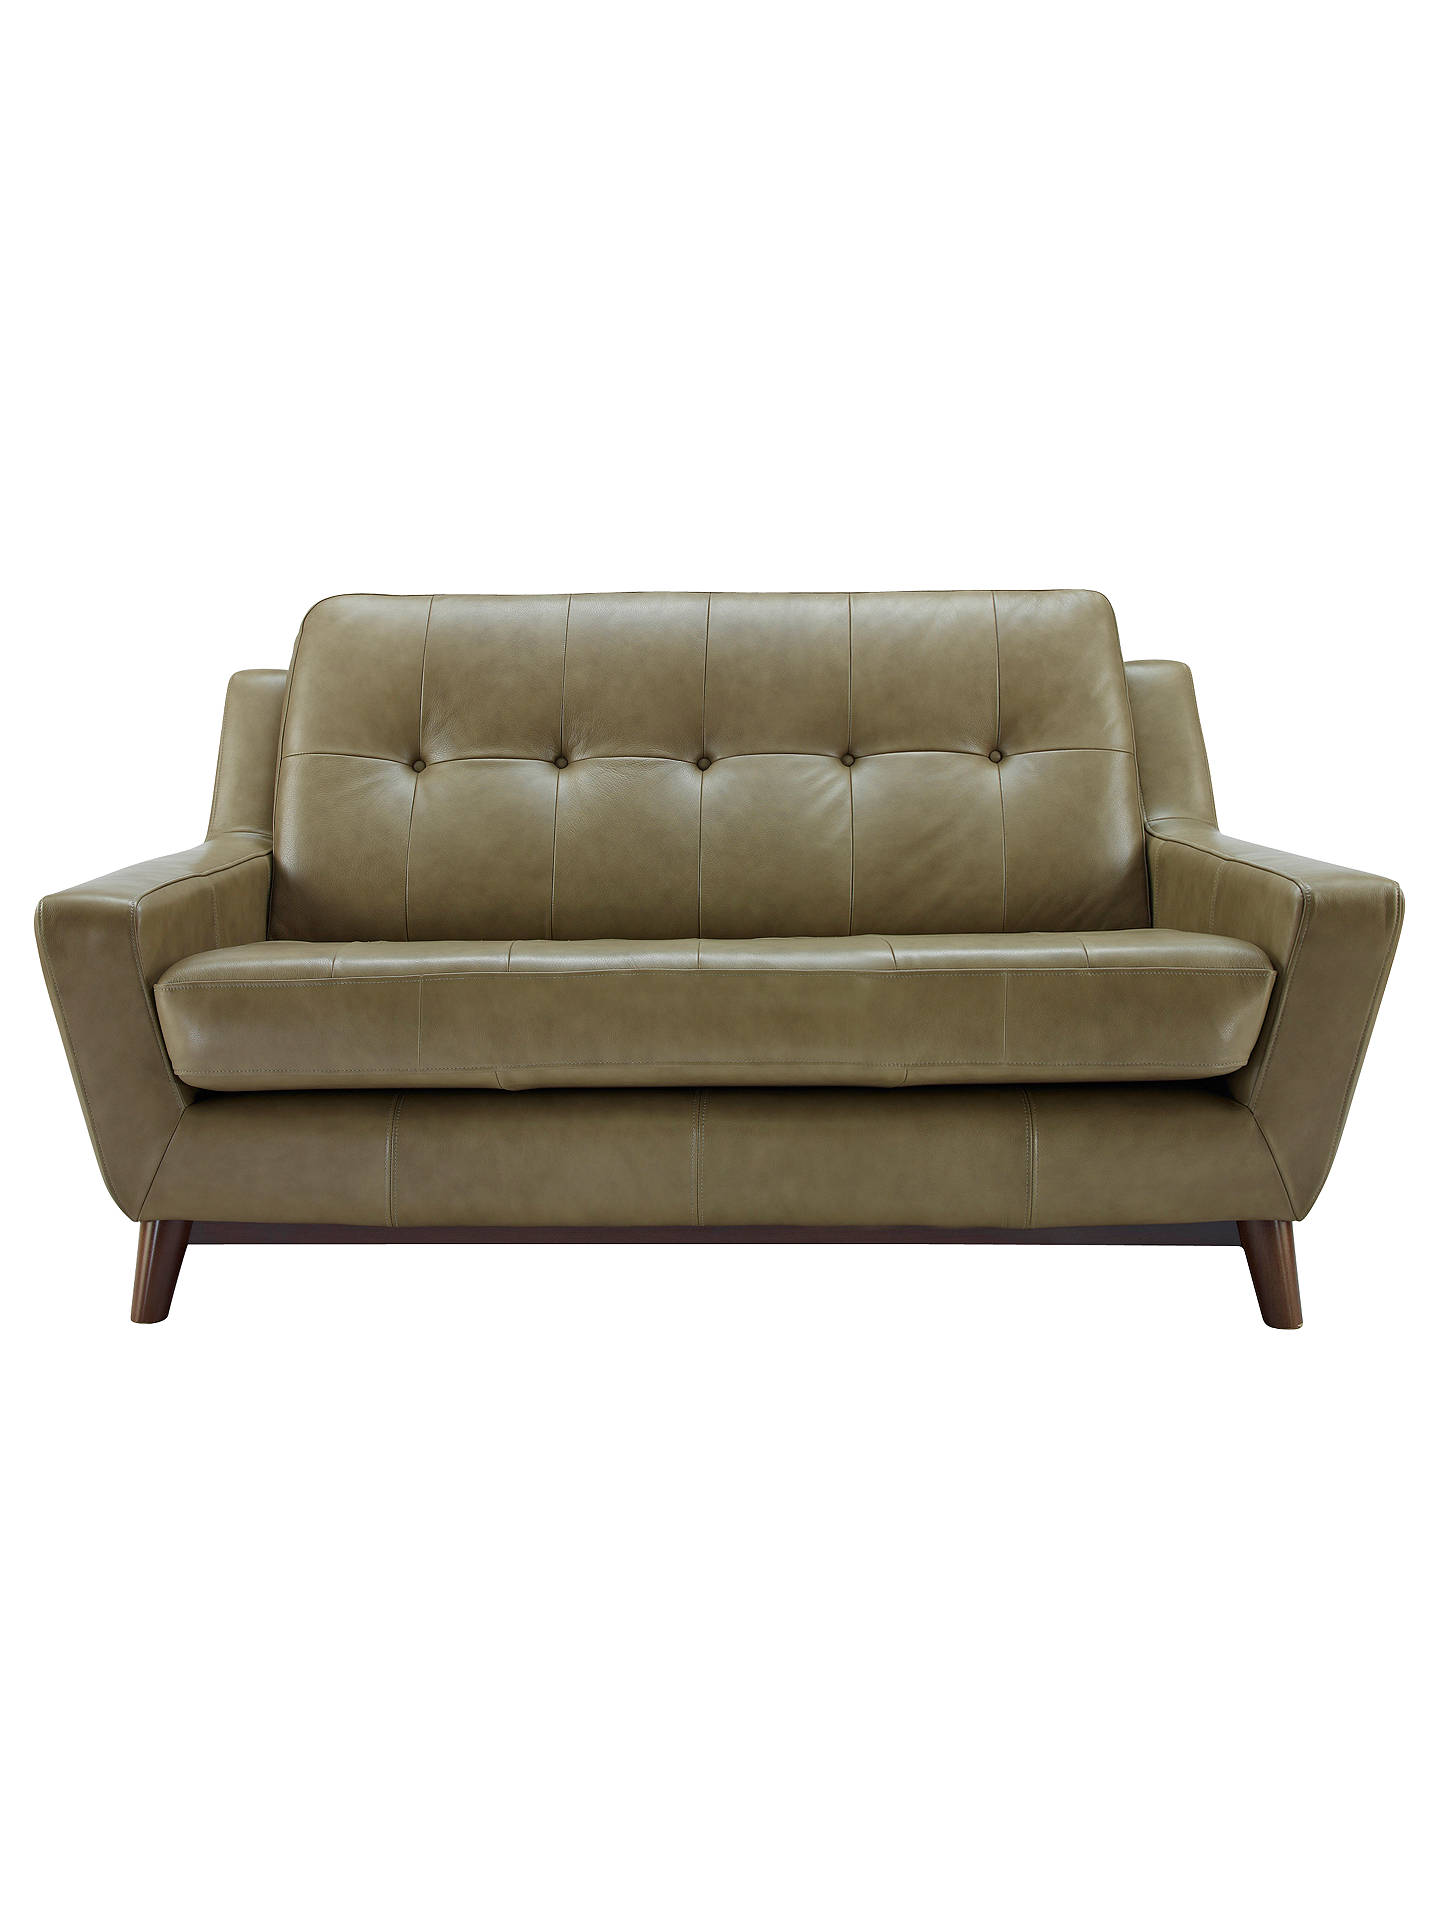 Bon BuyG Plan Vintage The Fifty Three Small Leather Sofa, Olive Green Online At  Johnlewis.